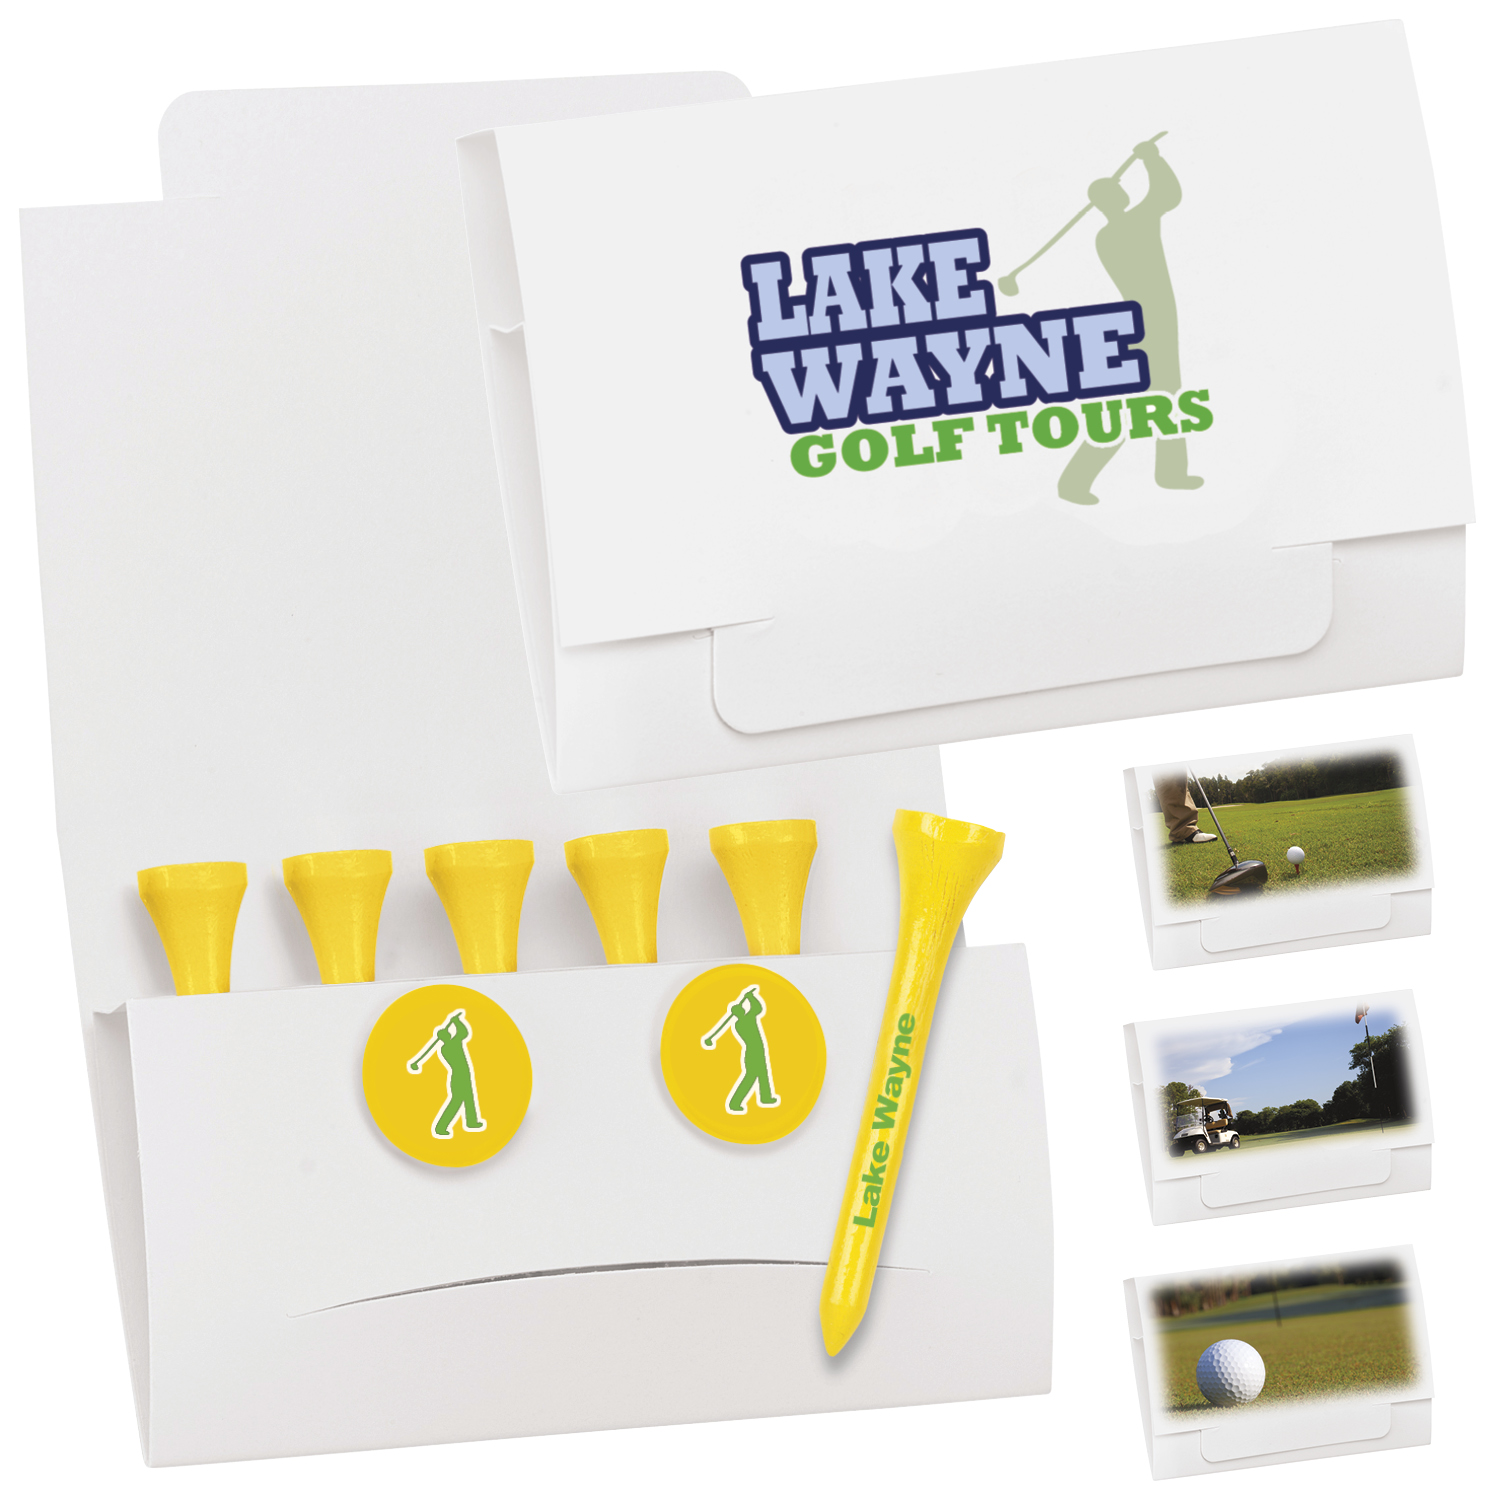 6-2 Golf Tee Packet w/2 Ball Markers - 3 1/4